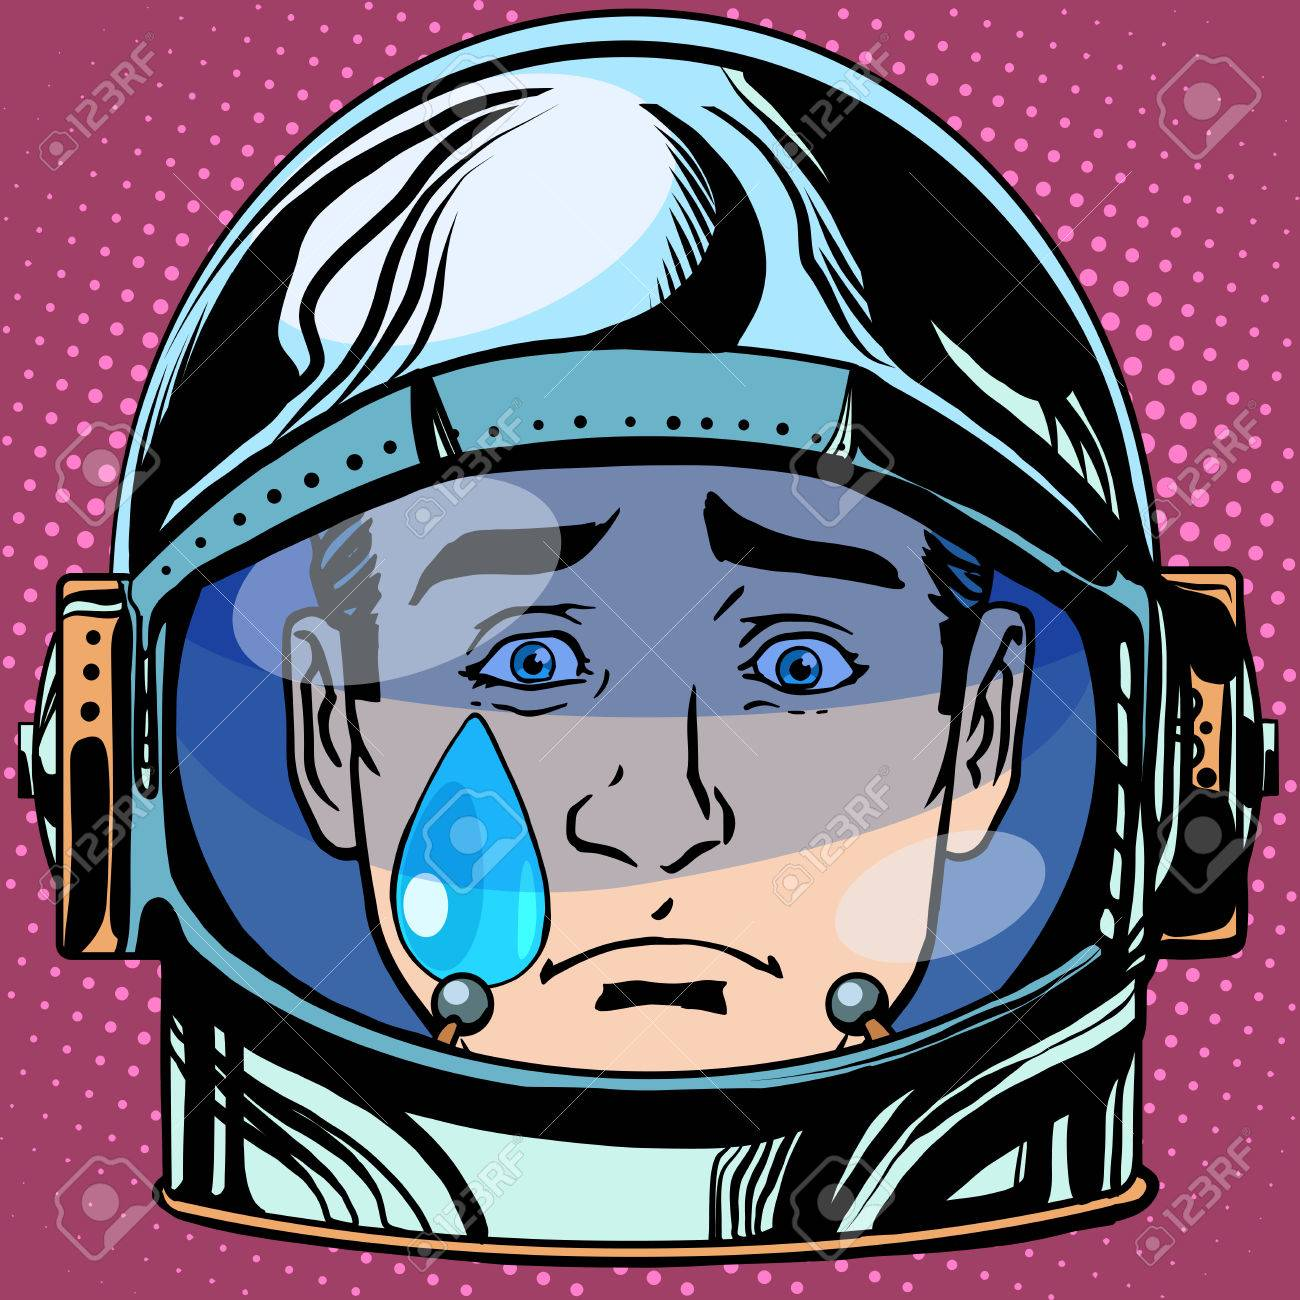 emoticon sadness tears Emoji face man astronaut retro pop art